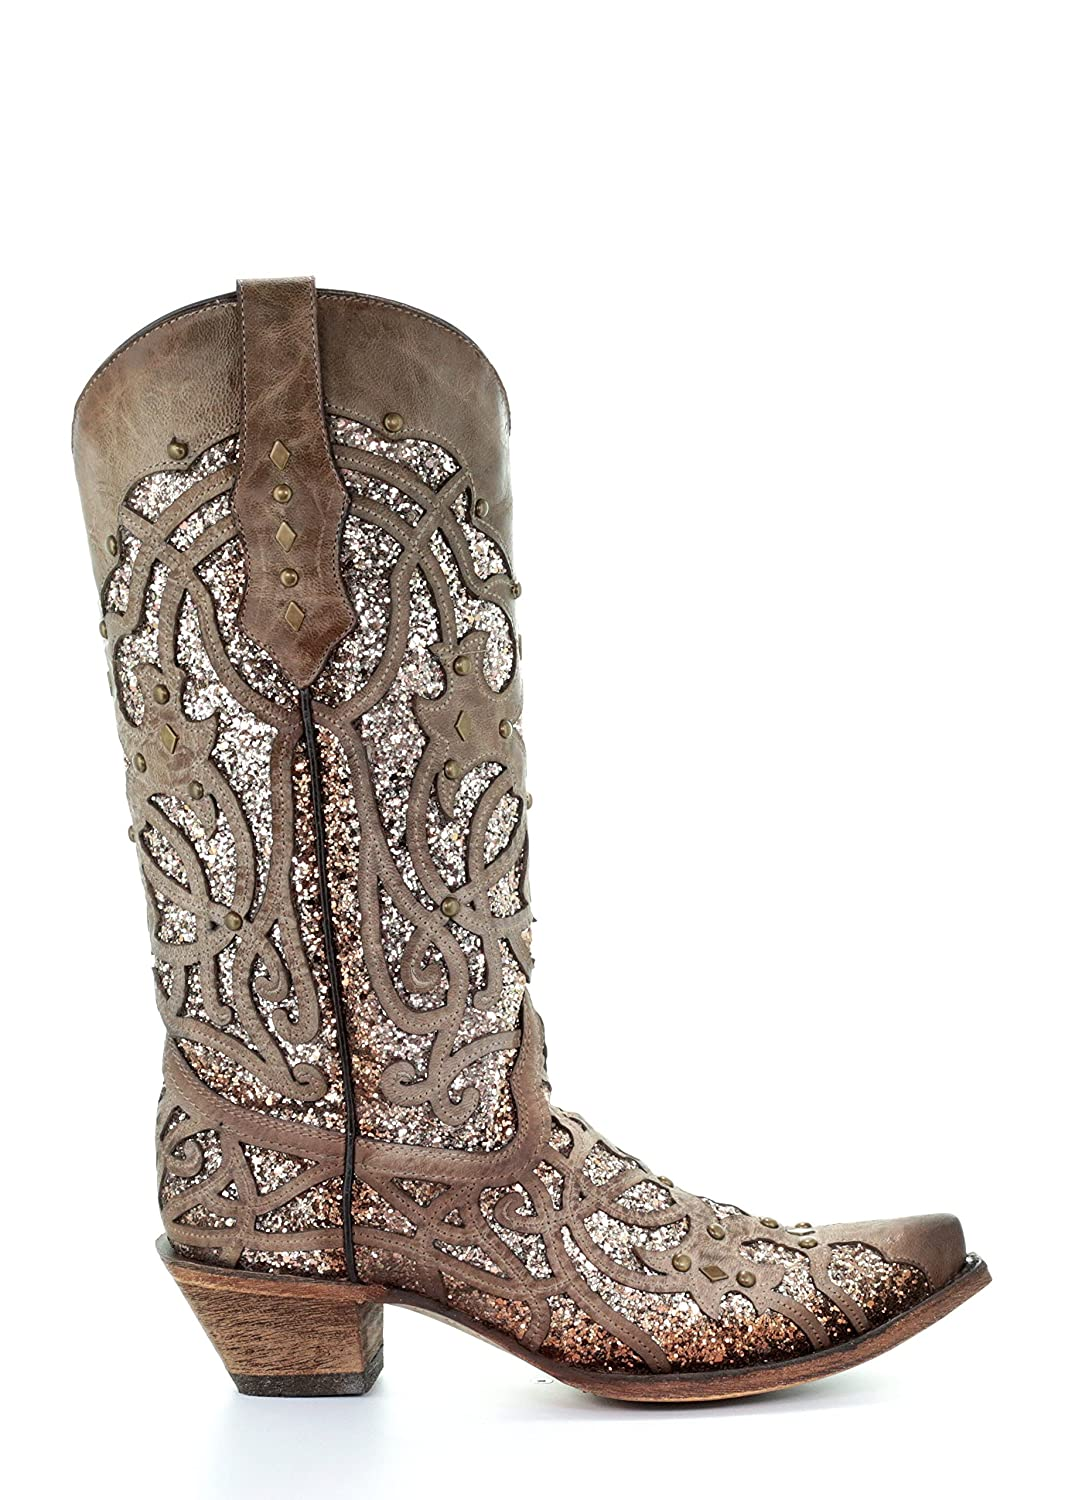 Corral Women's Luminary Glitter Inlay Studs Snip Toe Leather Cowgirl Boots - Orix B07BJCGPD8 9 B(M) US|Brown